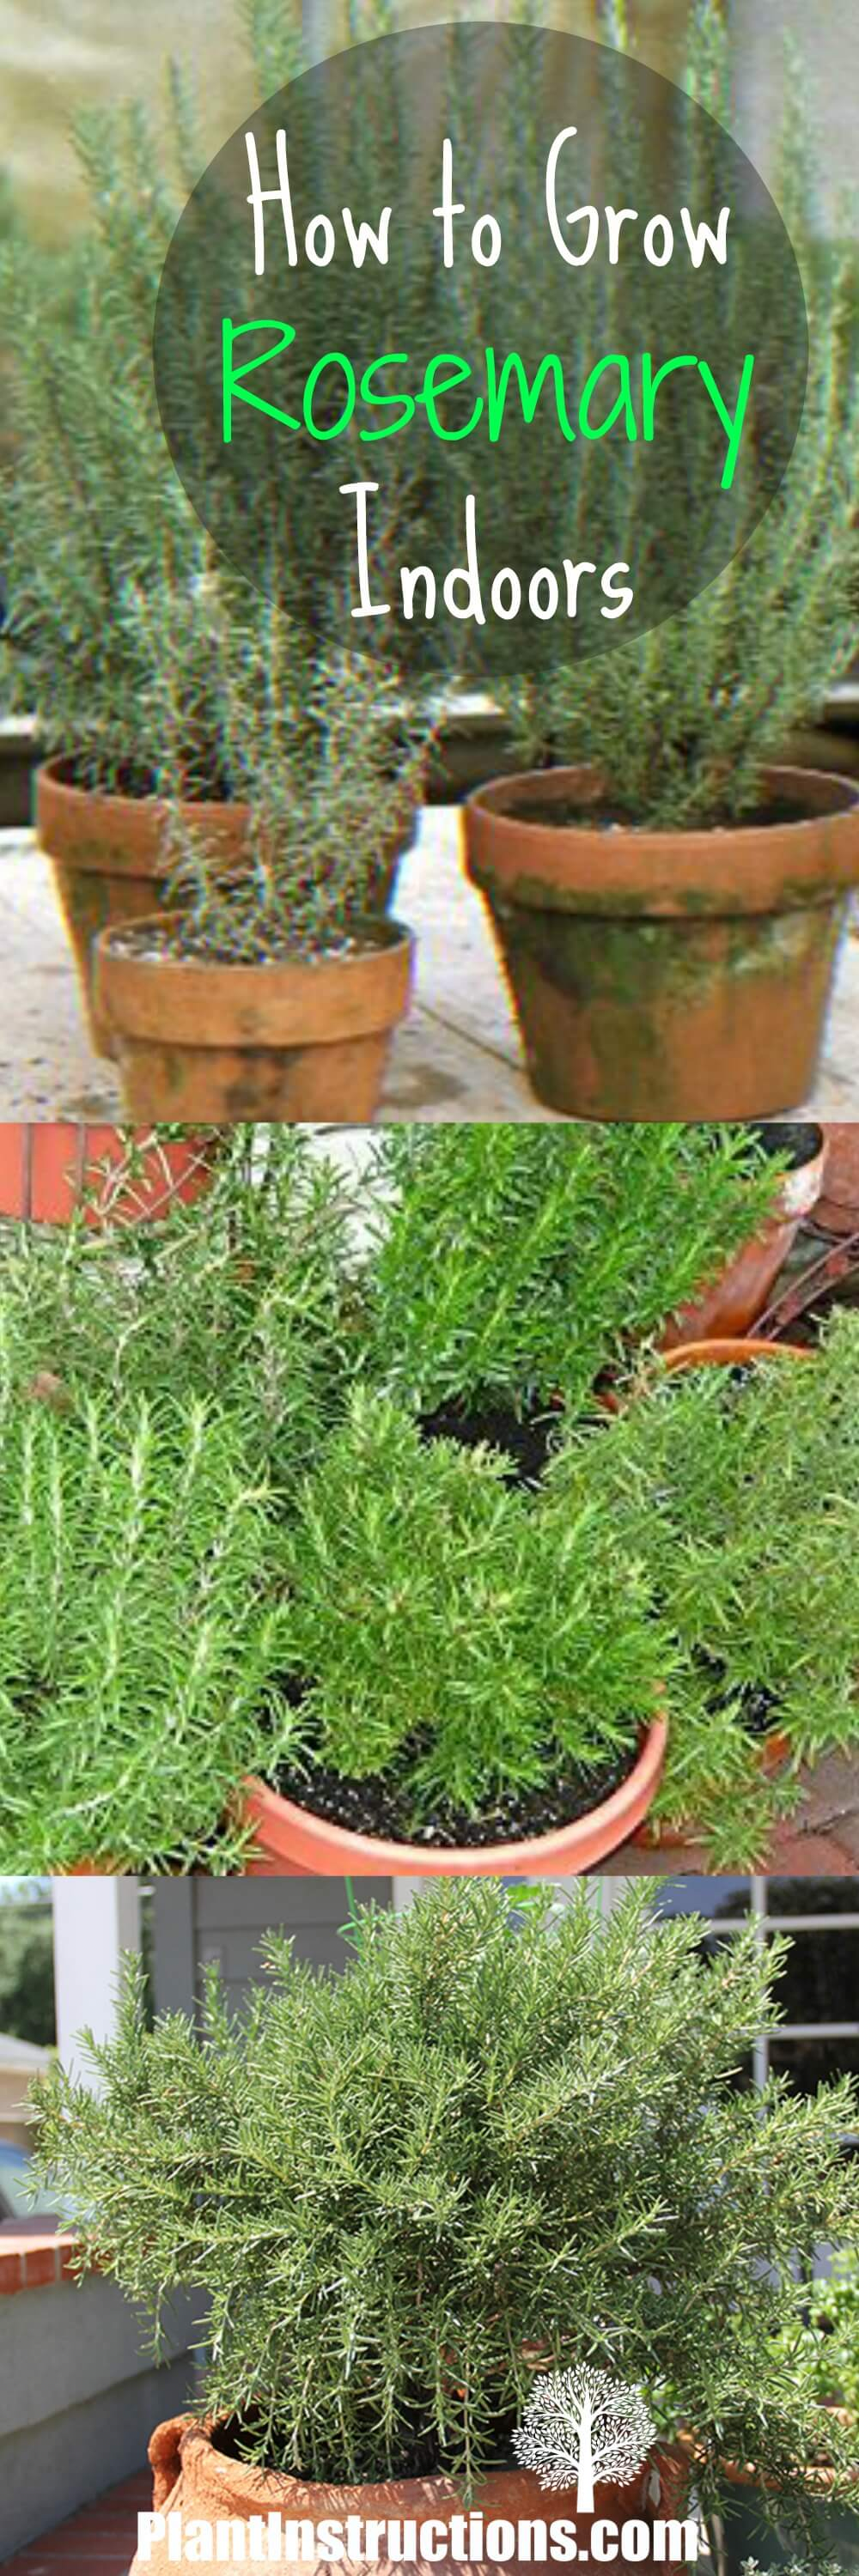 How to Grow Rosemary Indoors: Growing Rosemary Indoors